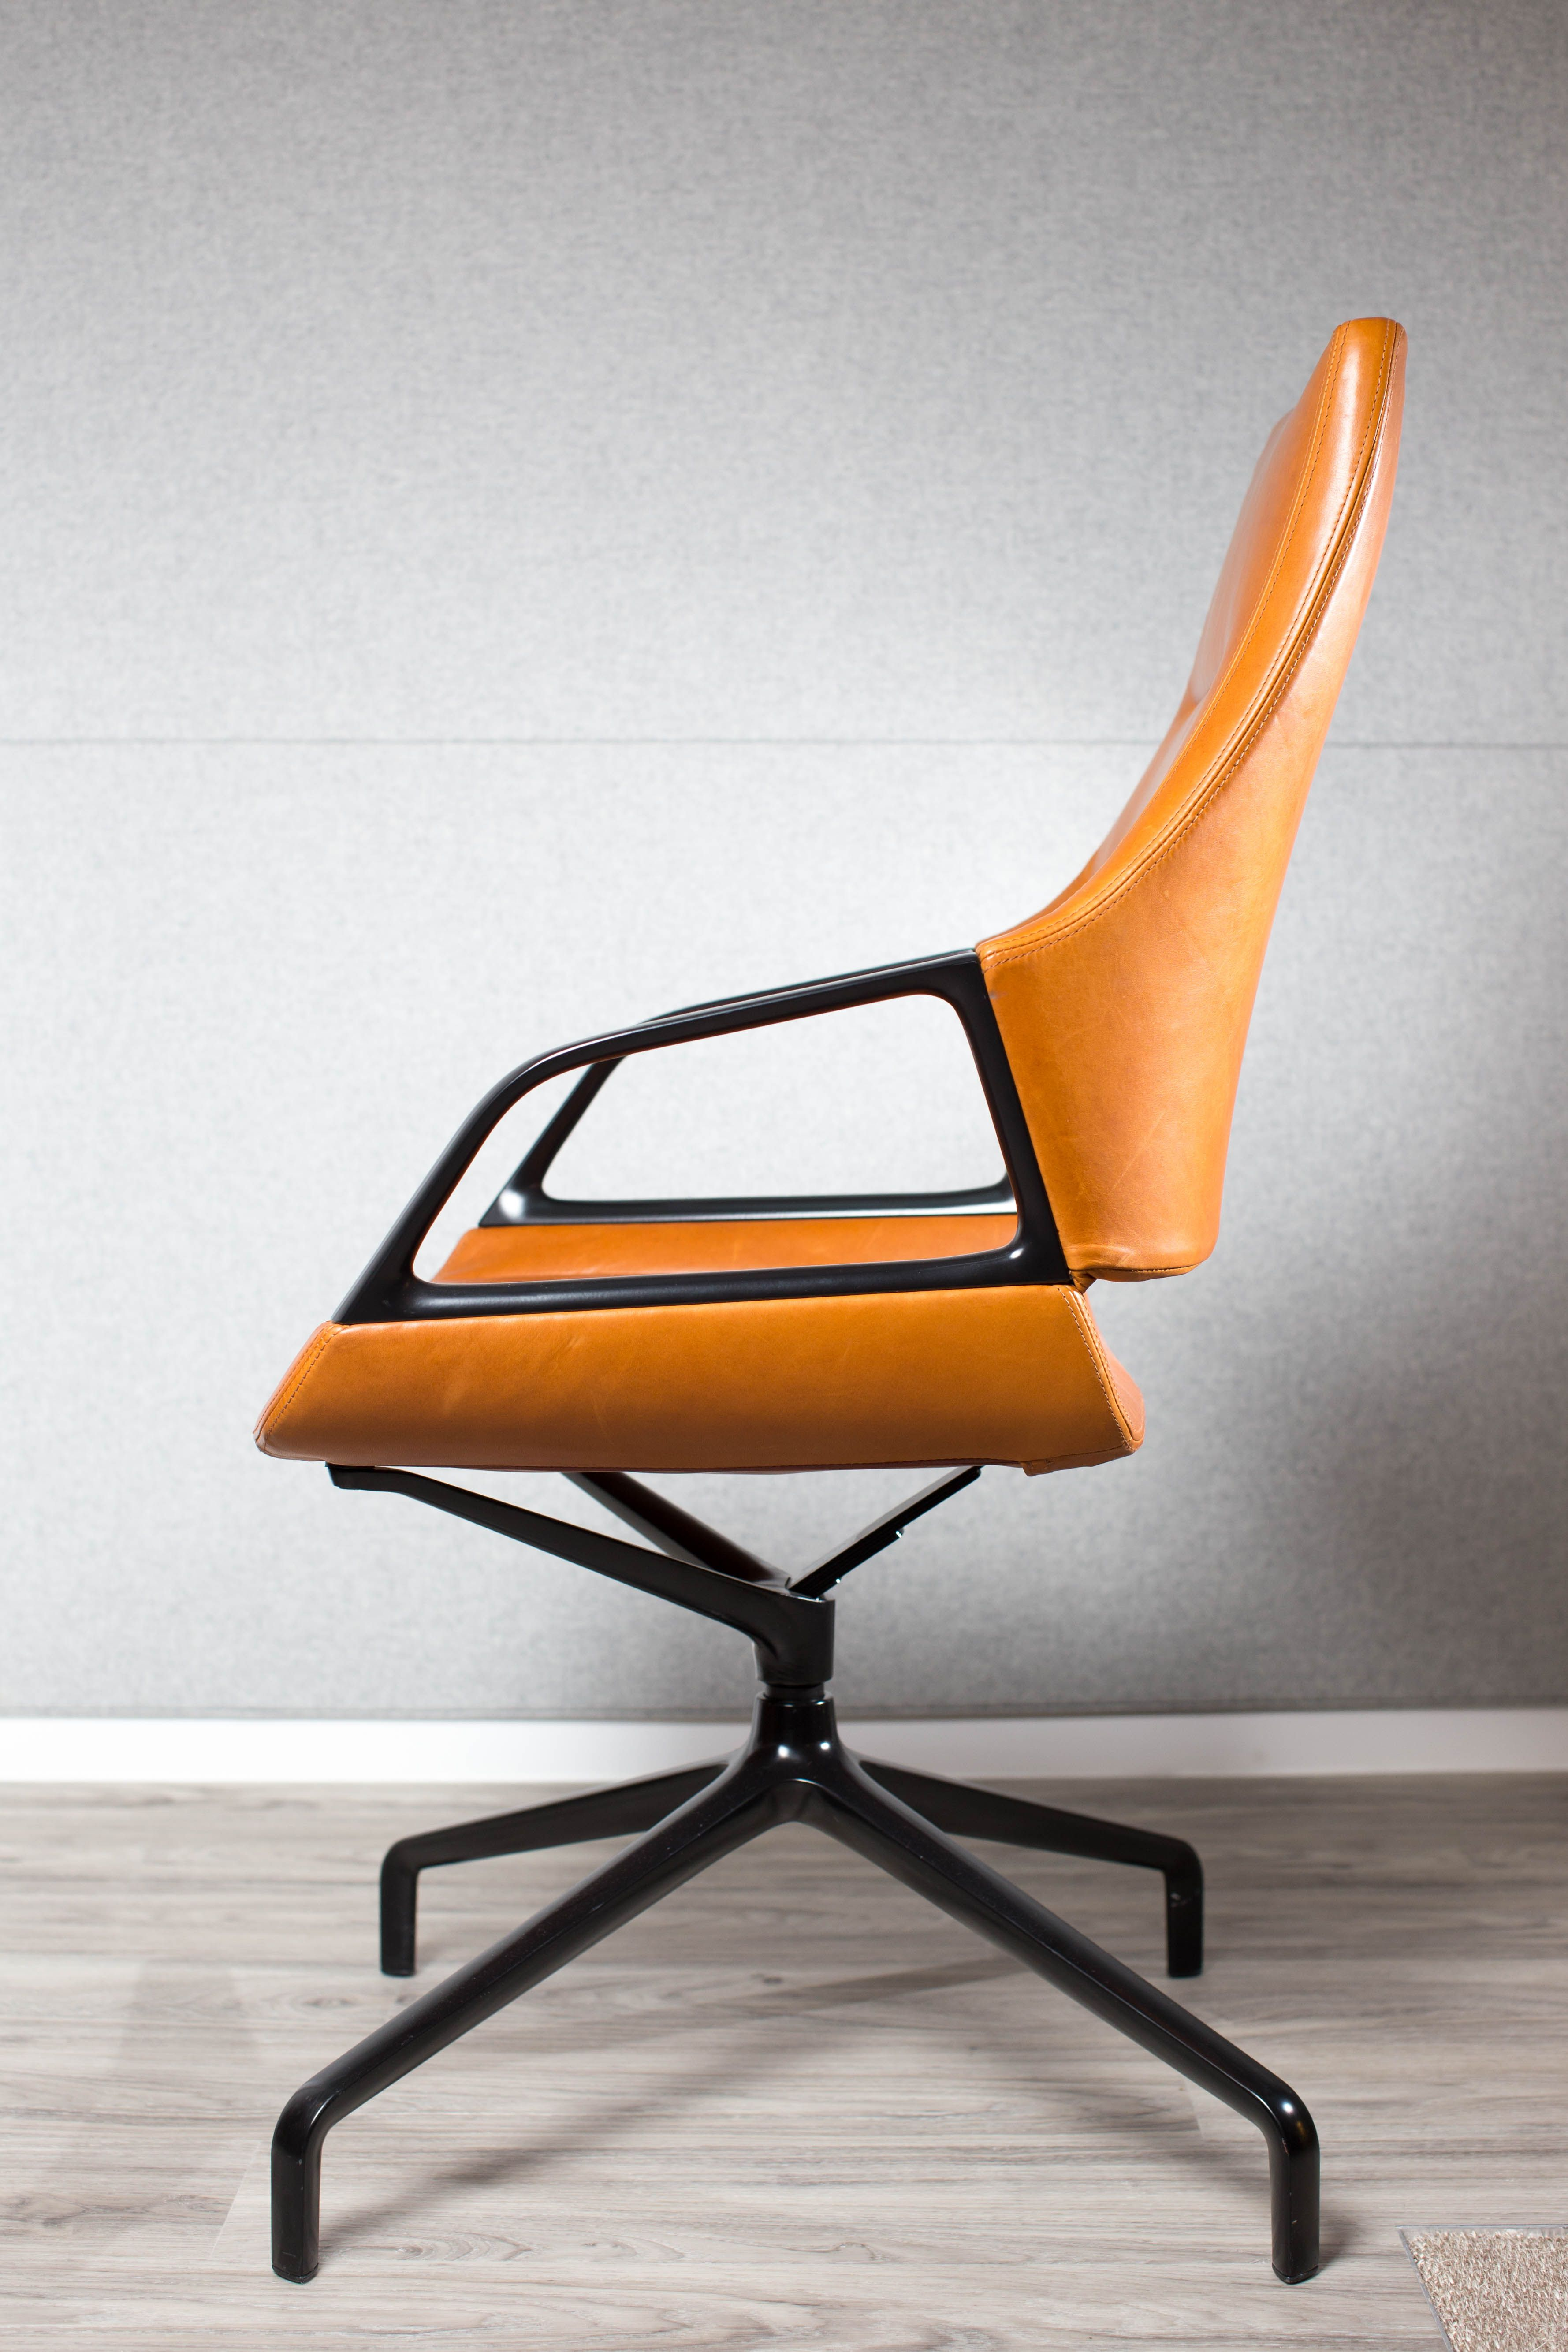 5 Conference BaseDesign Star By JehsLaub Graph Chair With lcFK1J